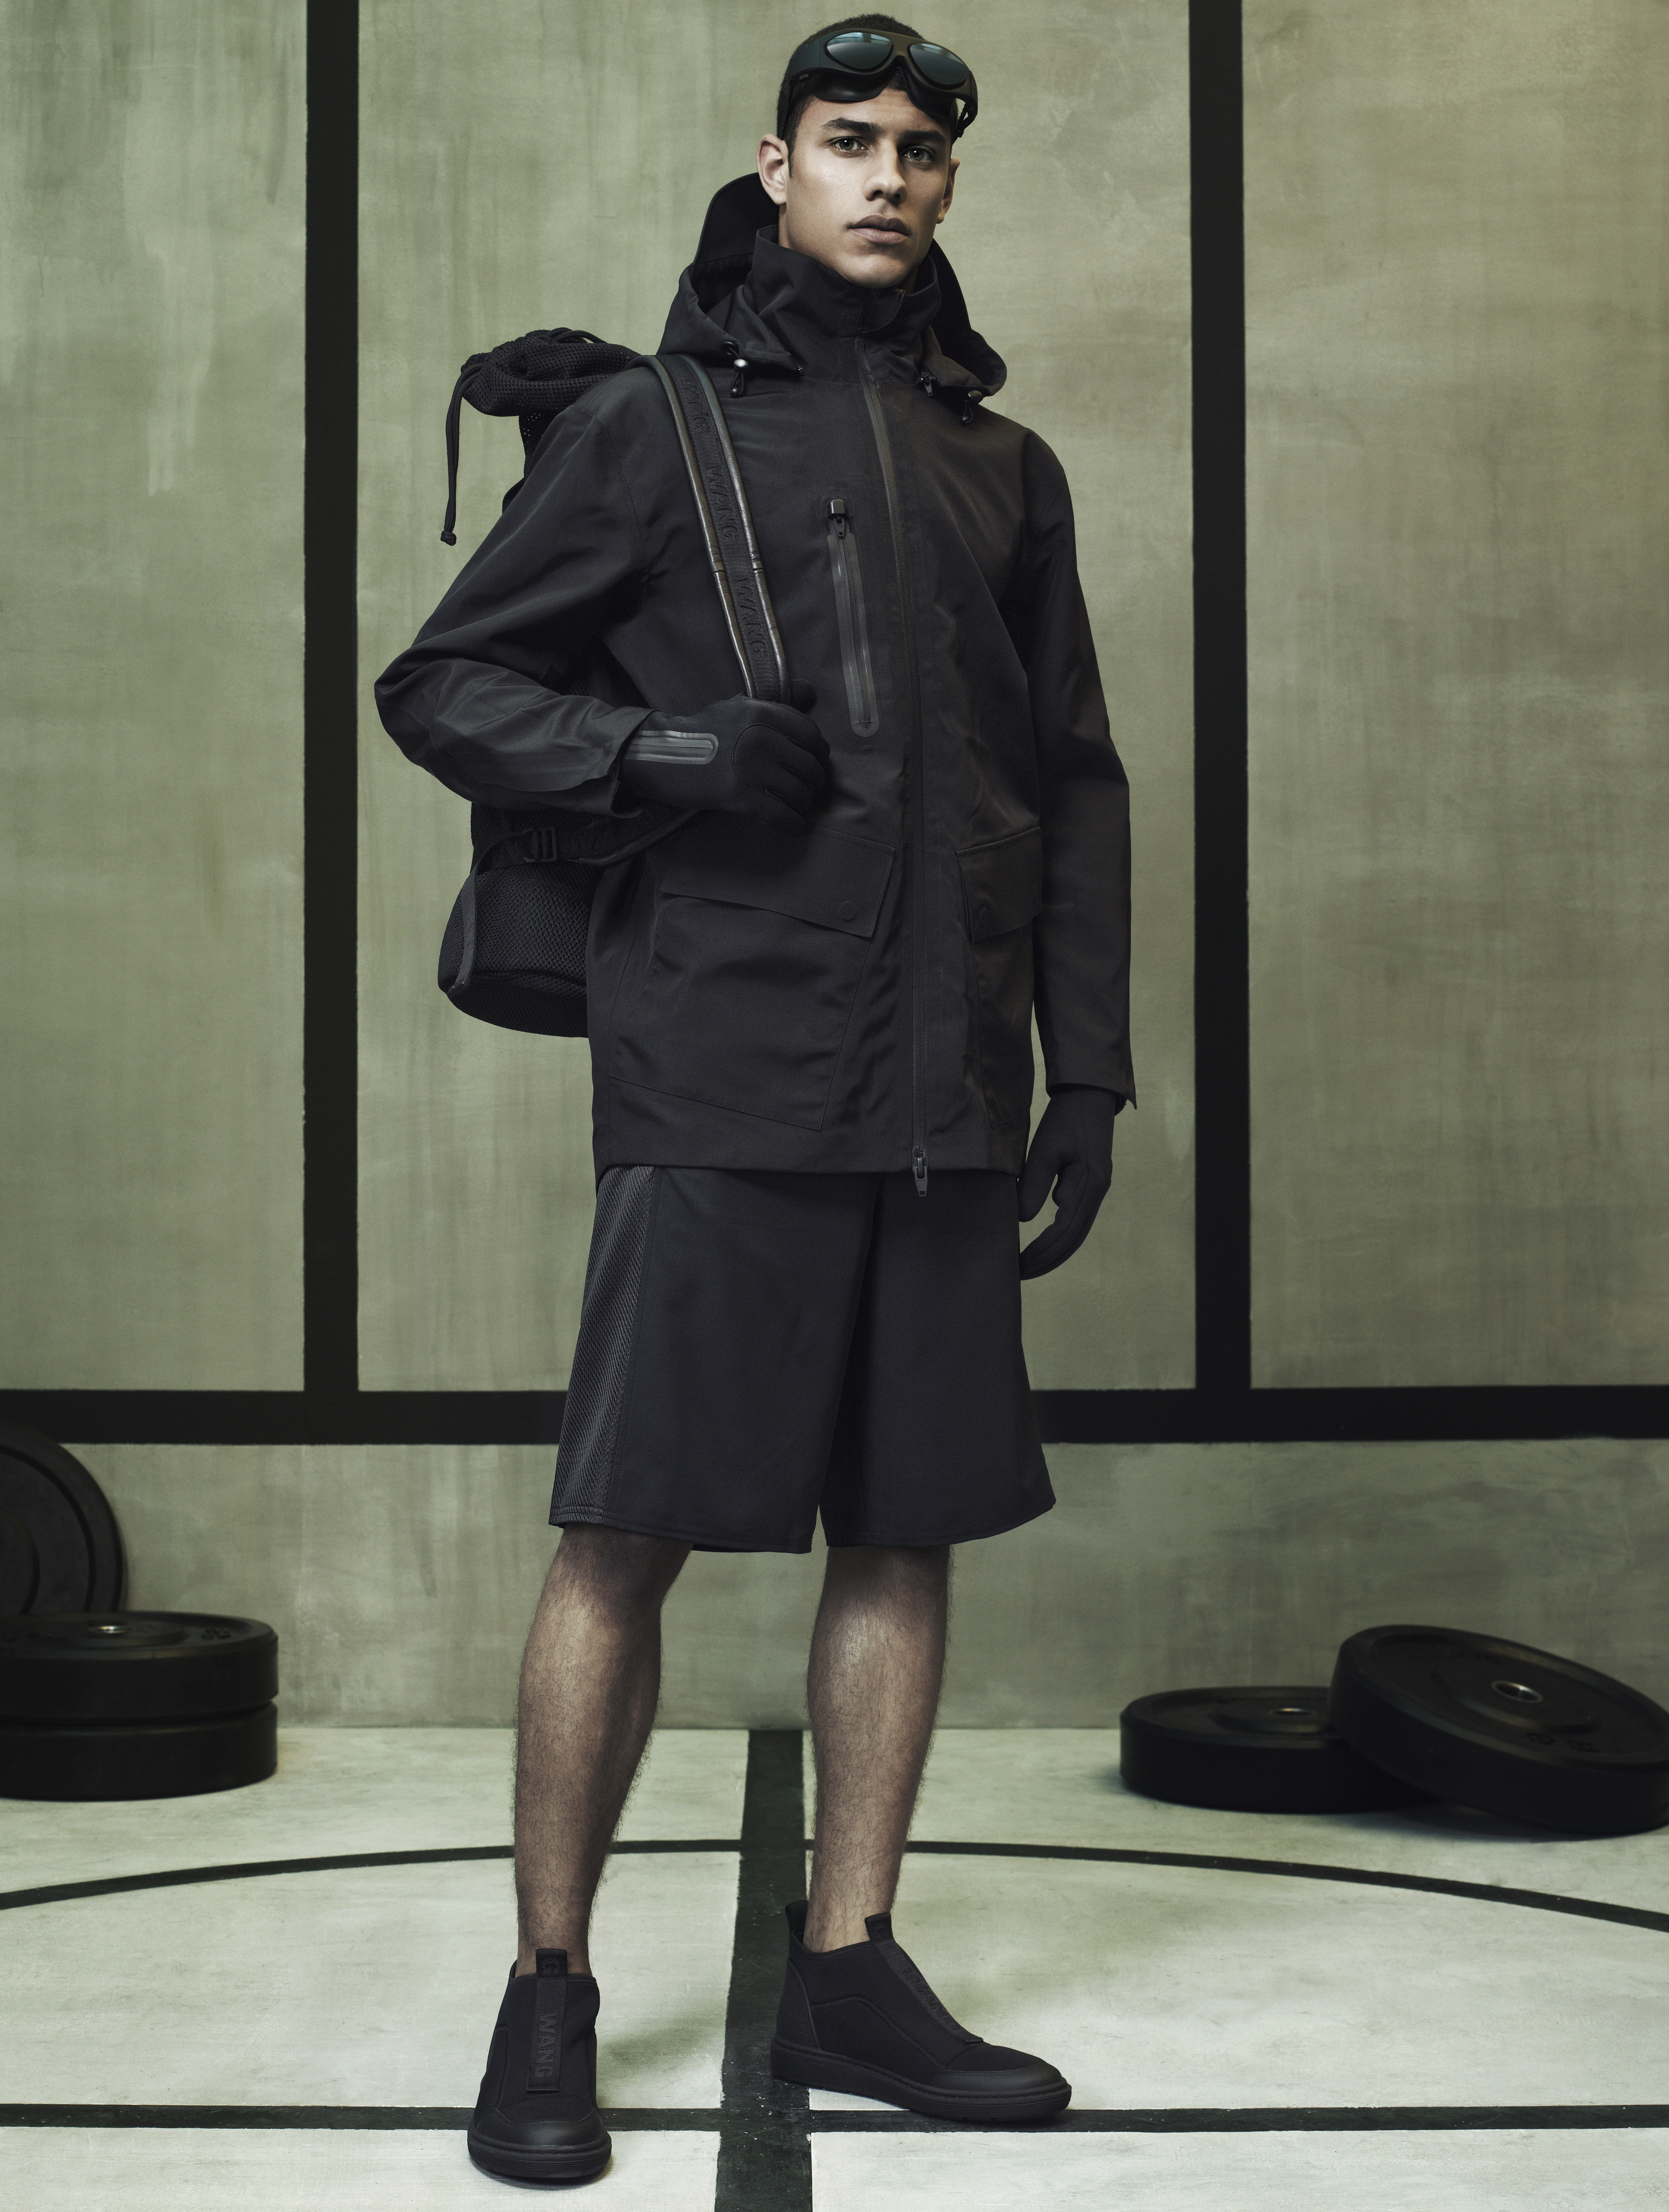 Wang Newsalexander for hm lookbook recommend dress for on every day in 2019